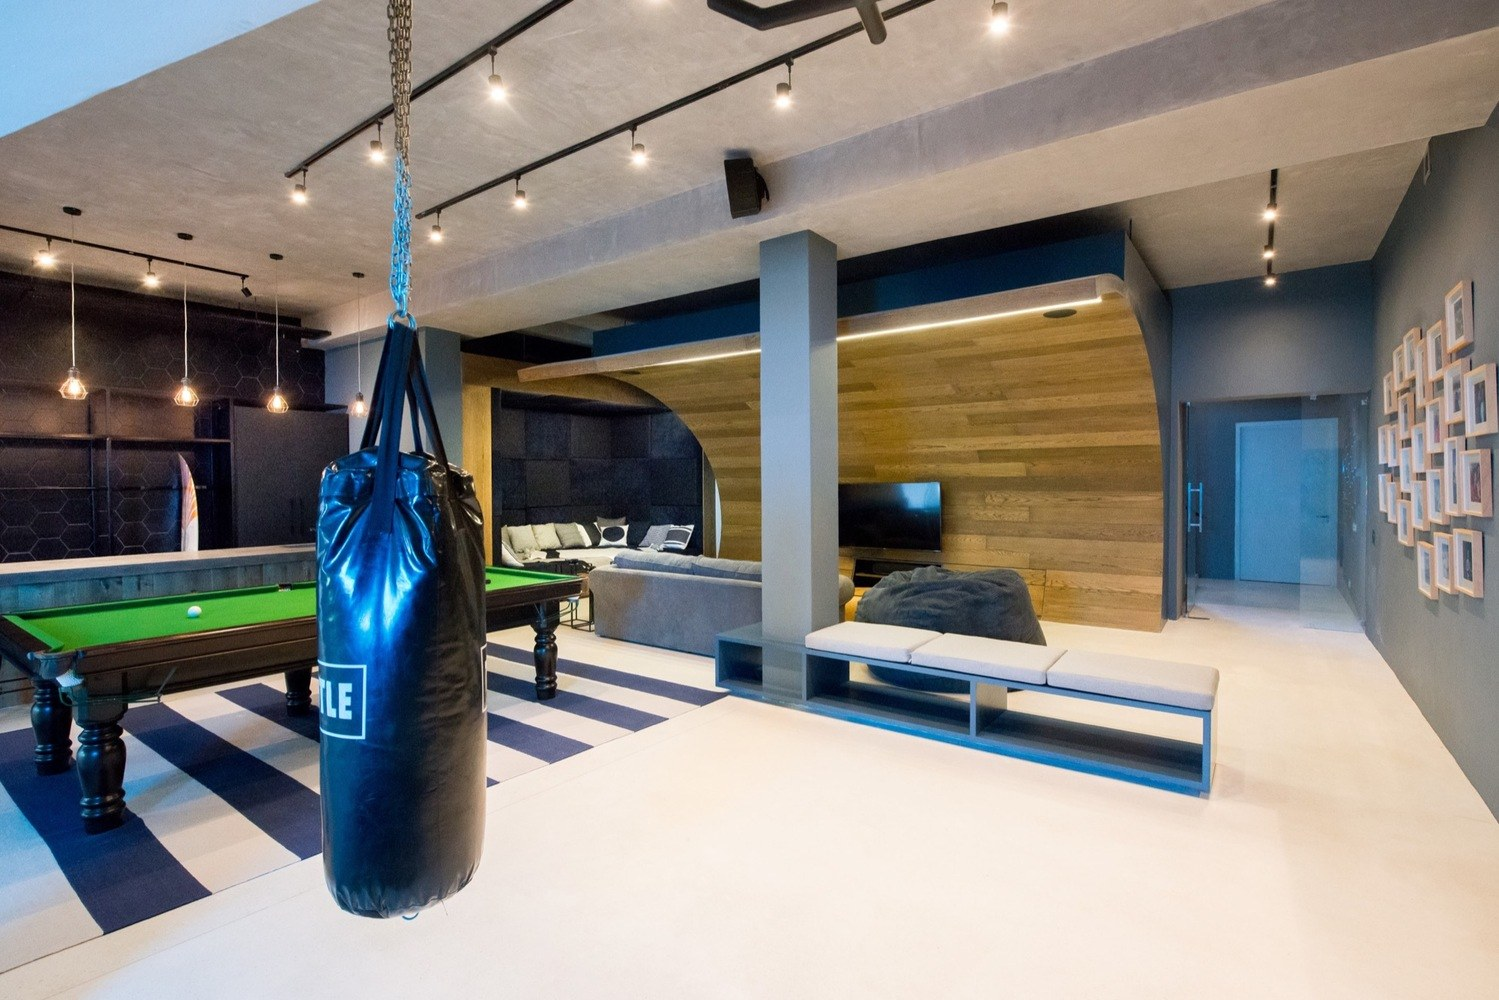 boxing bag and pool table in urban man cave